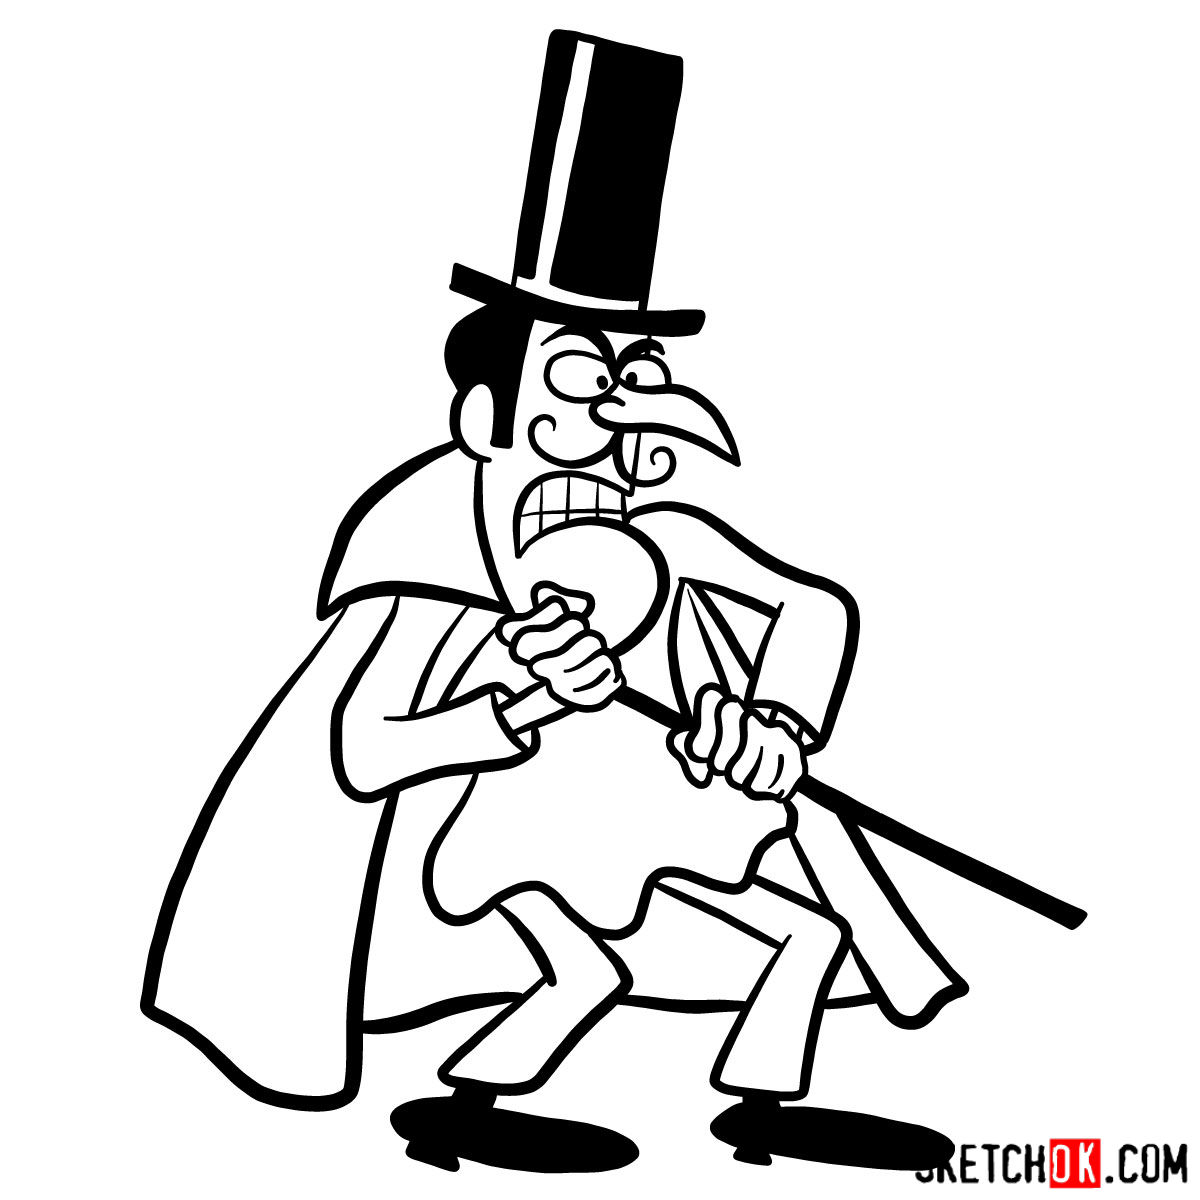 How to draw Snidely Whiplash - step 10